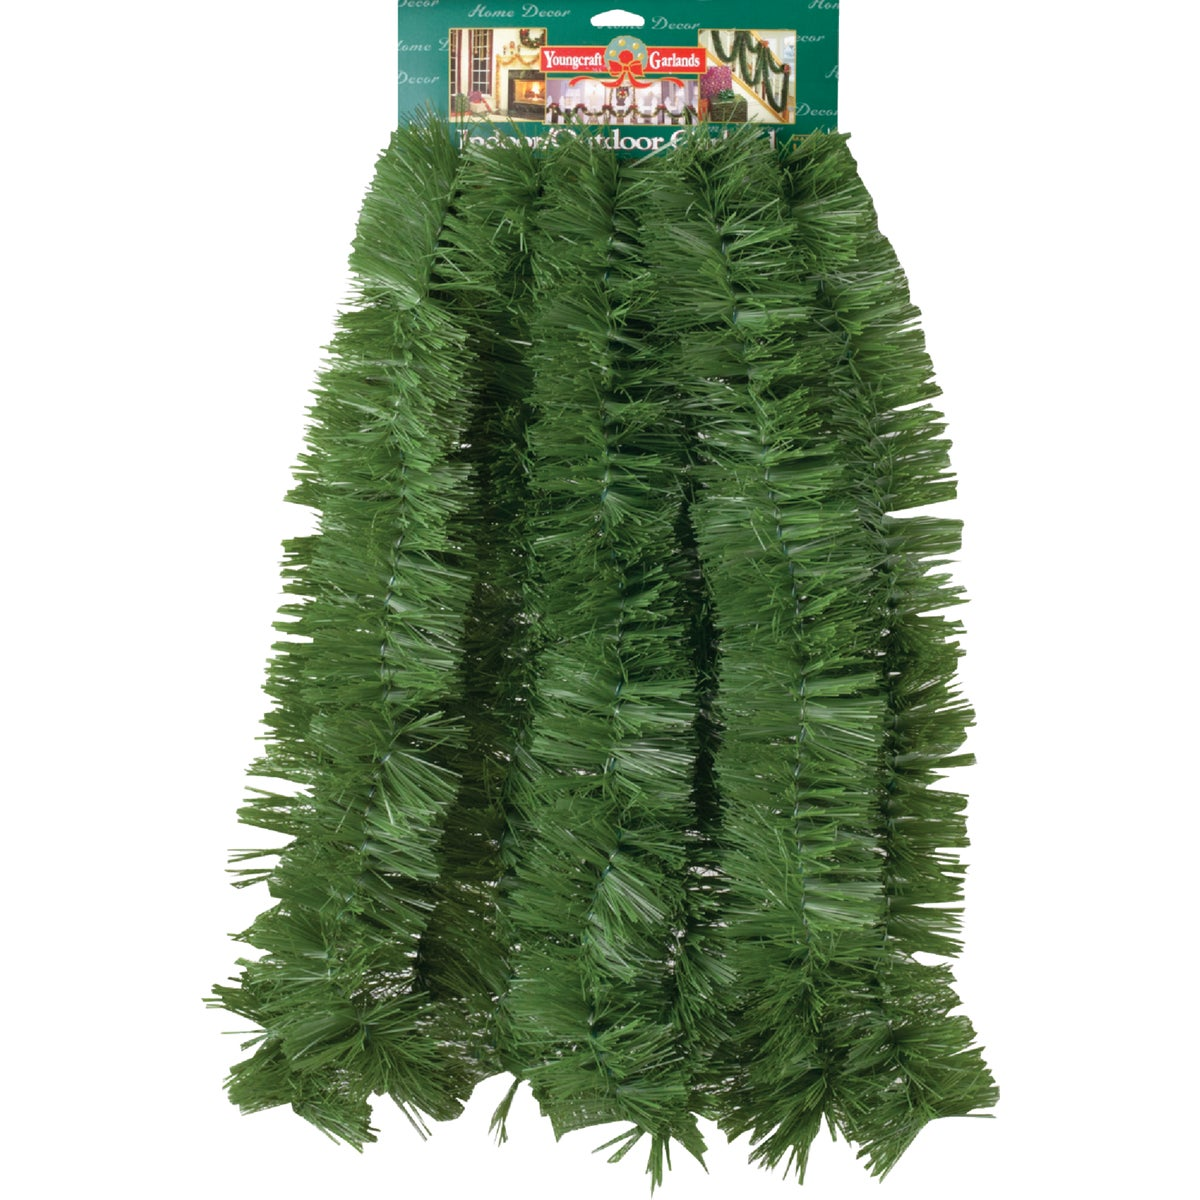 18' PINE GARLAND - ID35186-6 by F C Young & Co Inc